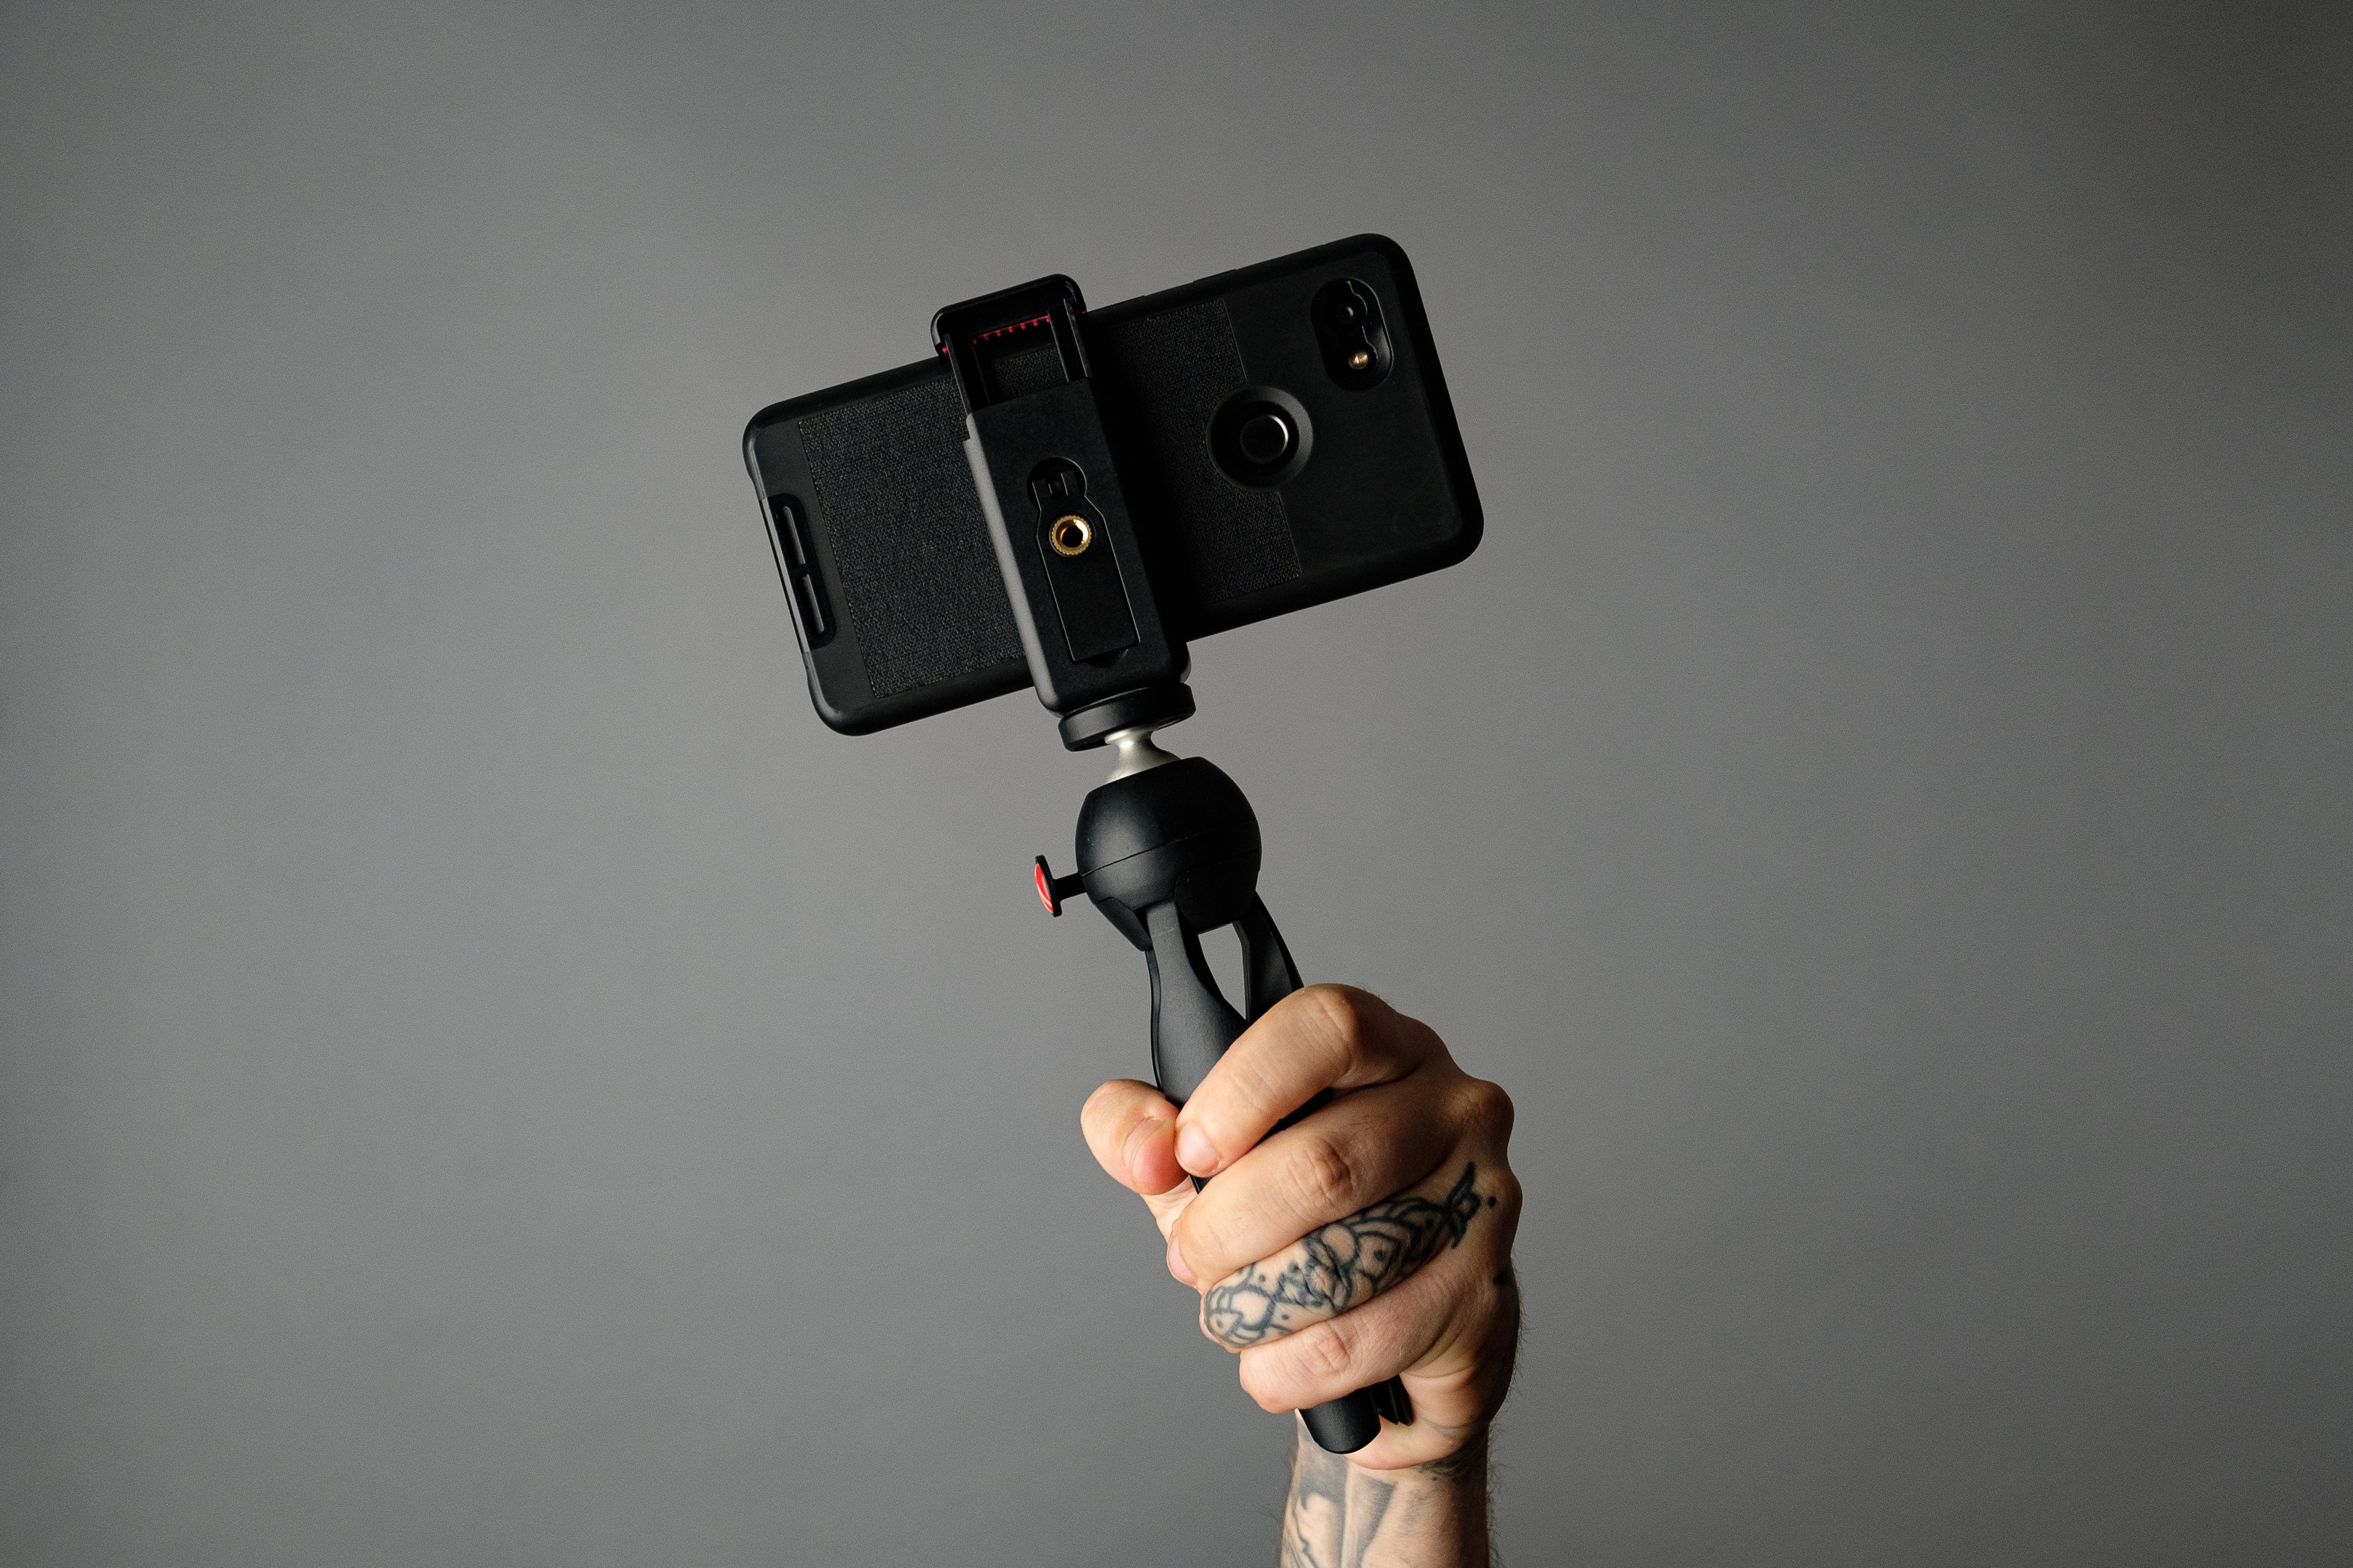 Hand Holding Mobile Phone And Tripod